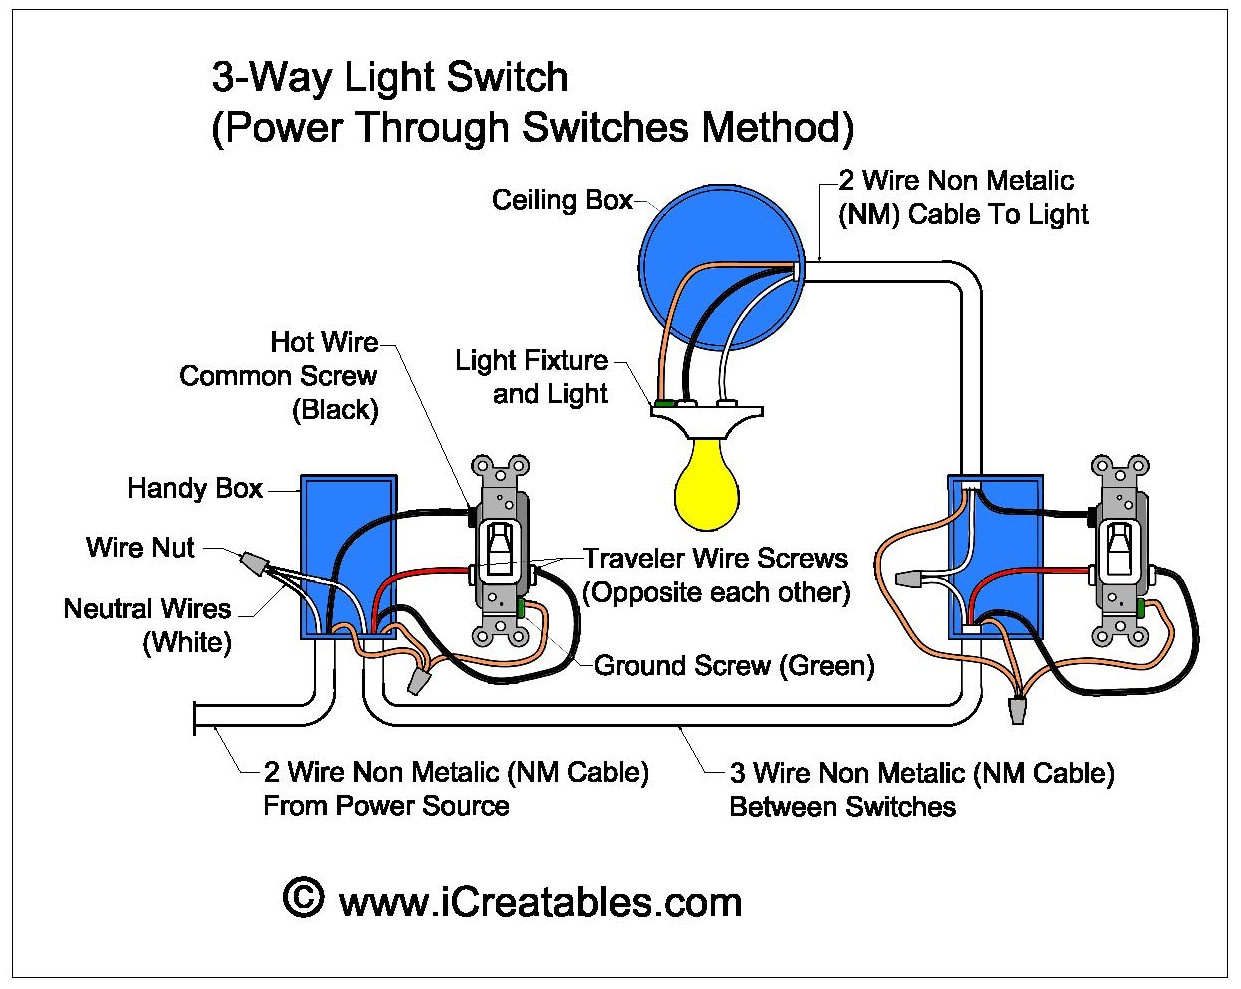 Top 10 Replacing Recessed Ceiling Lights likewise Electrical Wiring Diagram Of Toyota Land Cruiser Fj25 further 3 Way Switch With Power Feed Via The Light in addition Changing Out Programmable Light Switch Wire Help Needed also Carrier Weathermaker 8000 Thermostat Wiring. on dimmer switch wiring troubleshooting